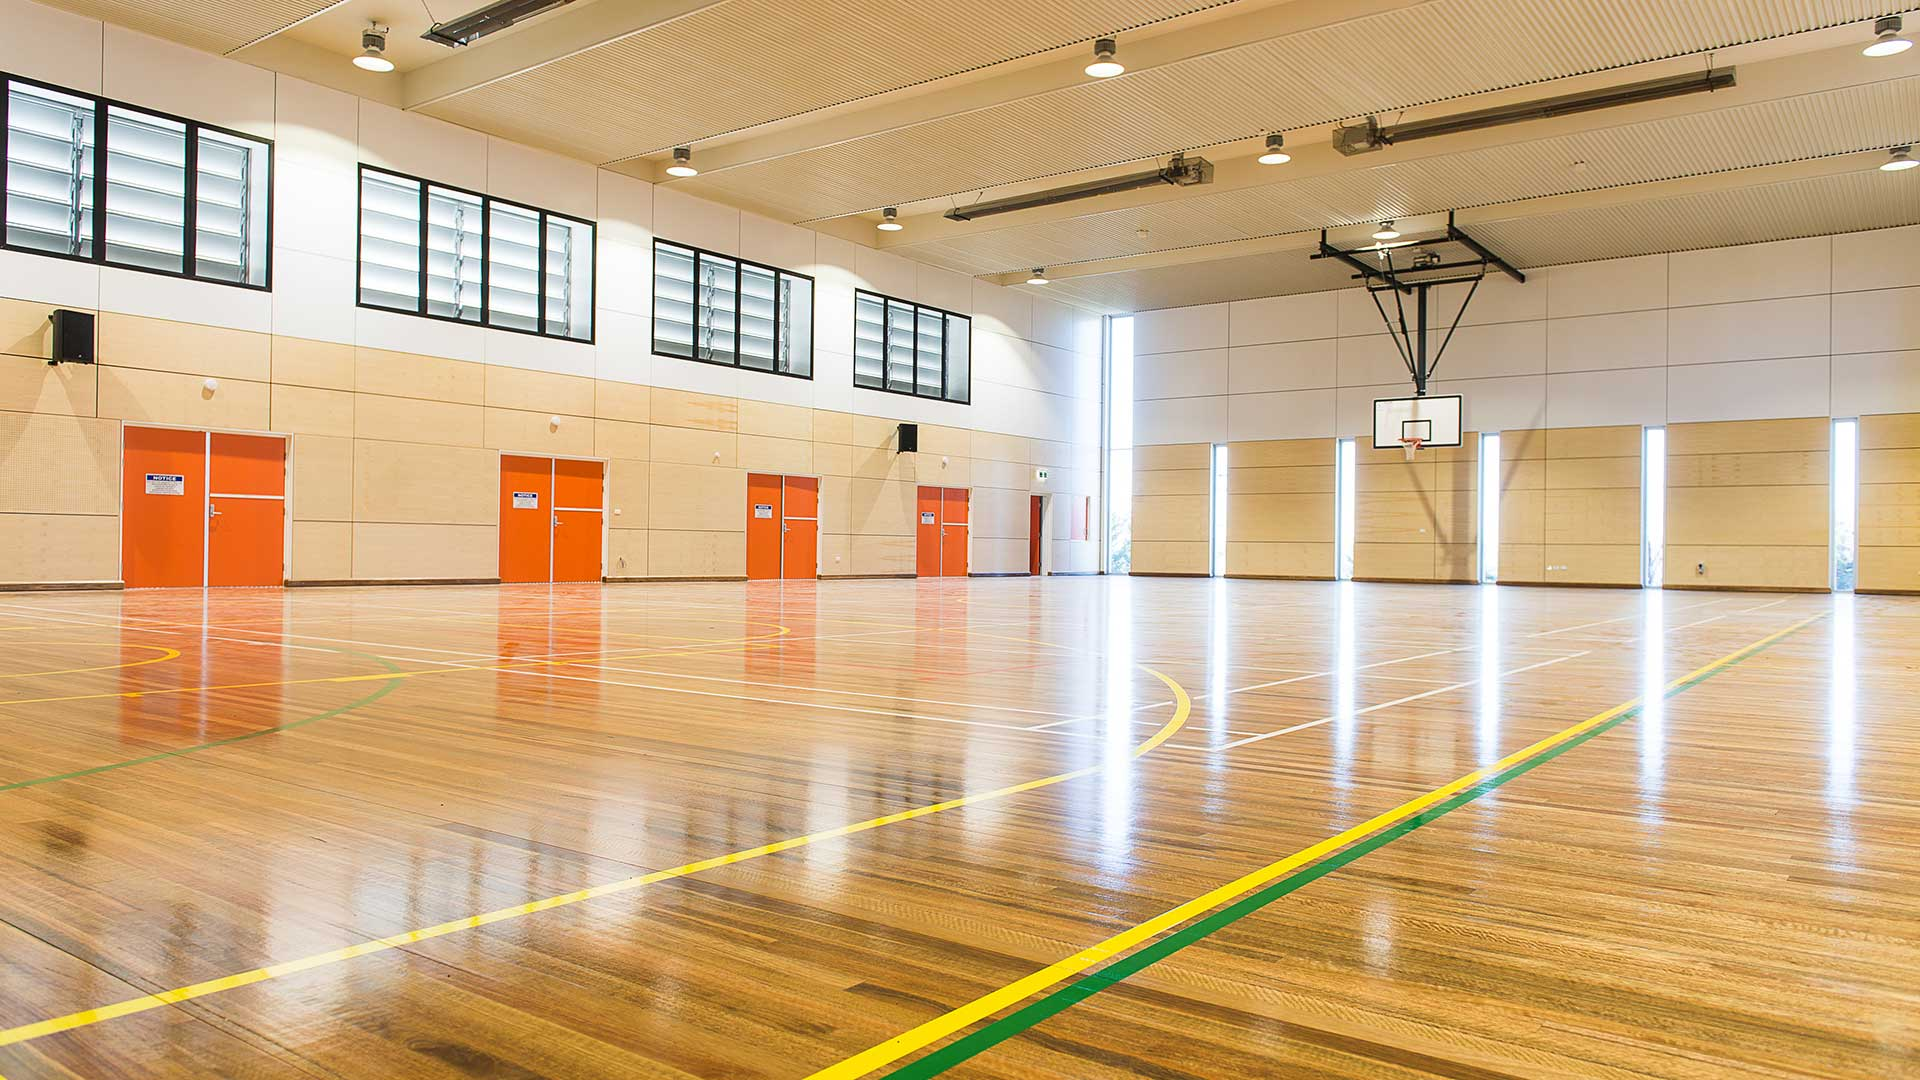 Denison College - Basketball Court | Hines Constructions, Central West NSW